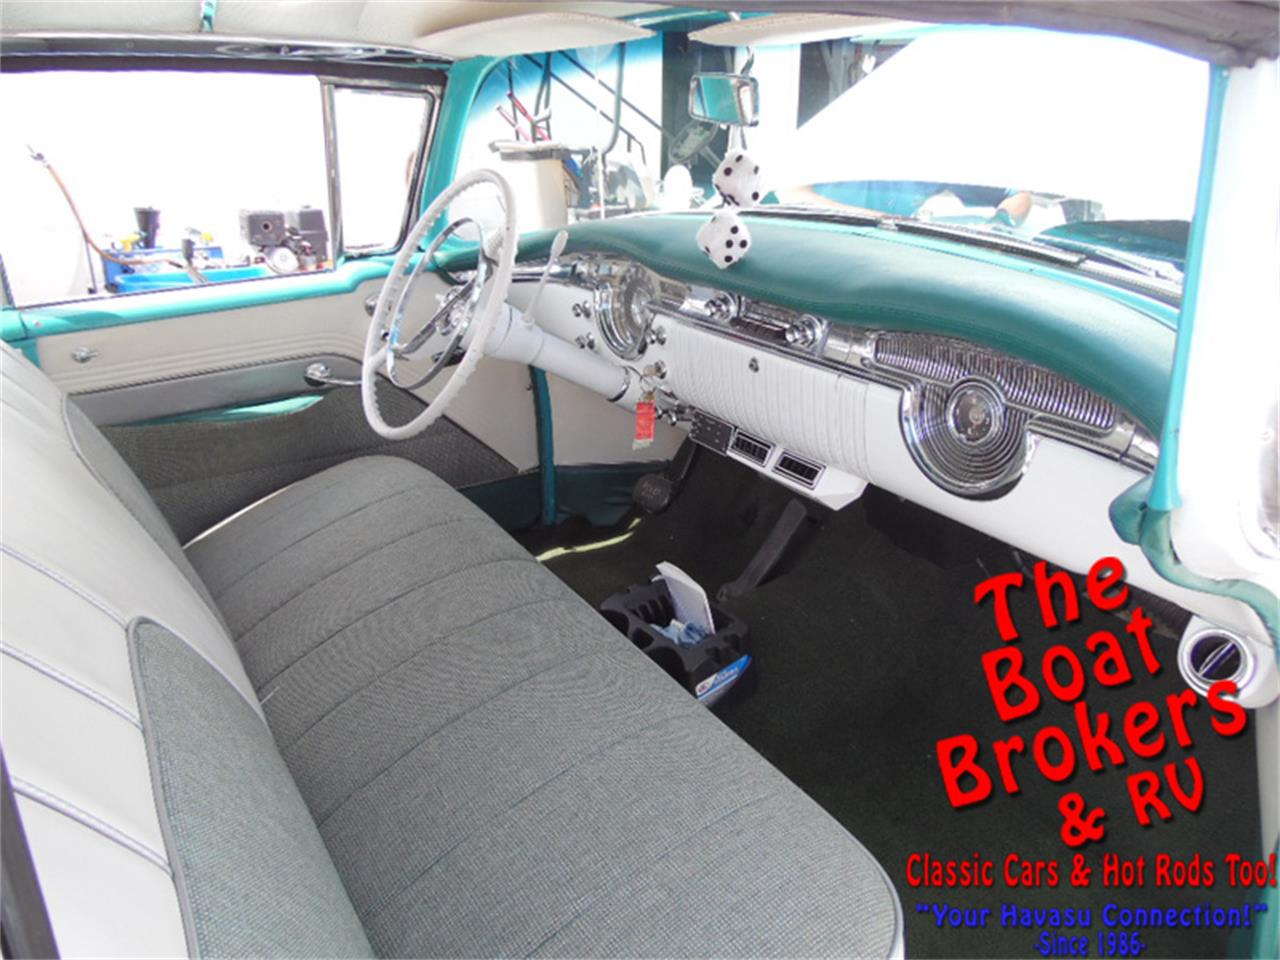 Large Picture of Classic 1955 Oldsmobile Holiday Rocket 88 Offered by The Boat Brokers - N2PY